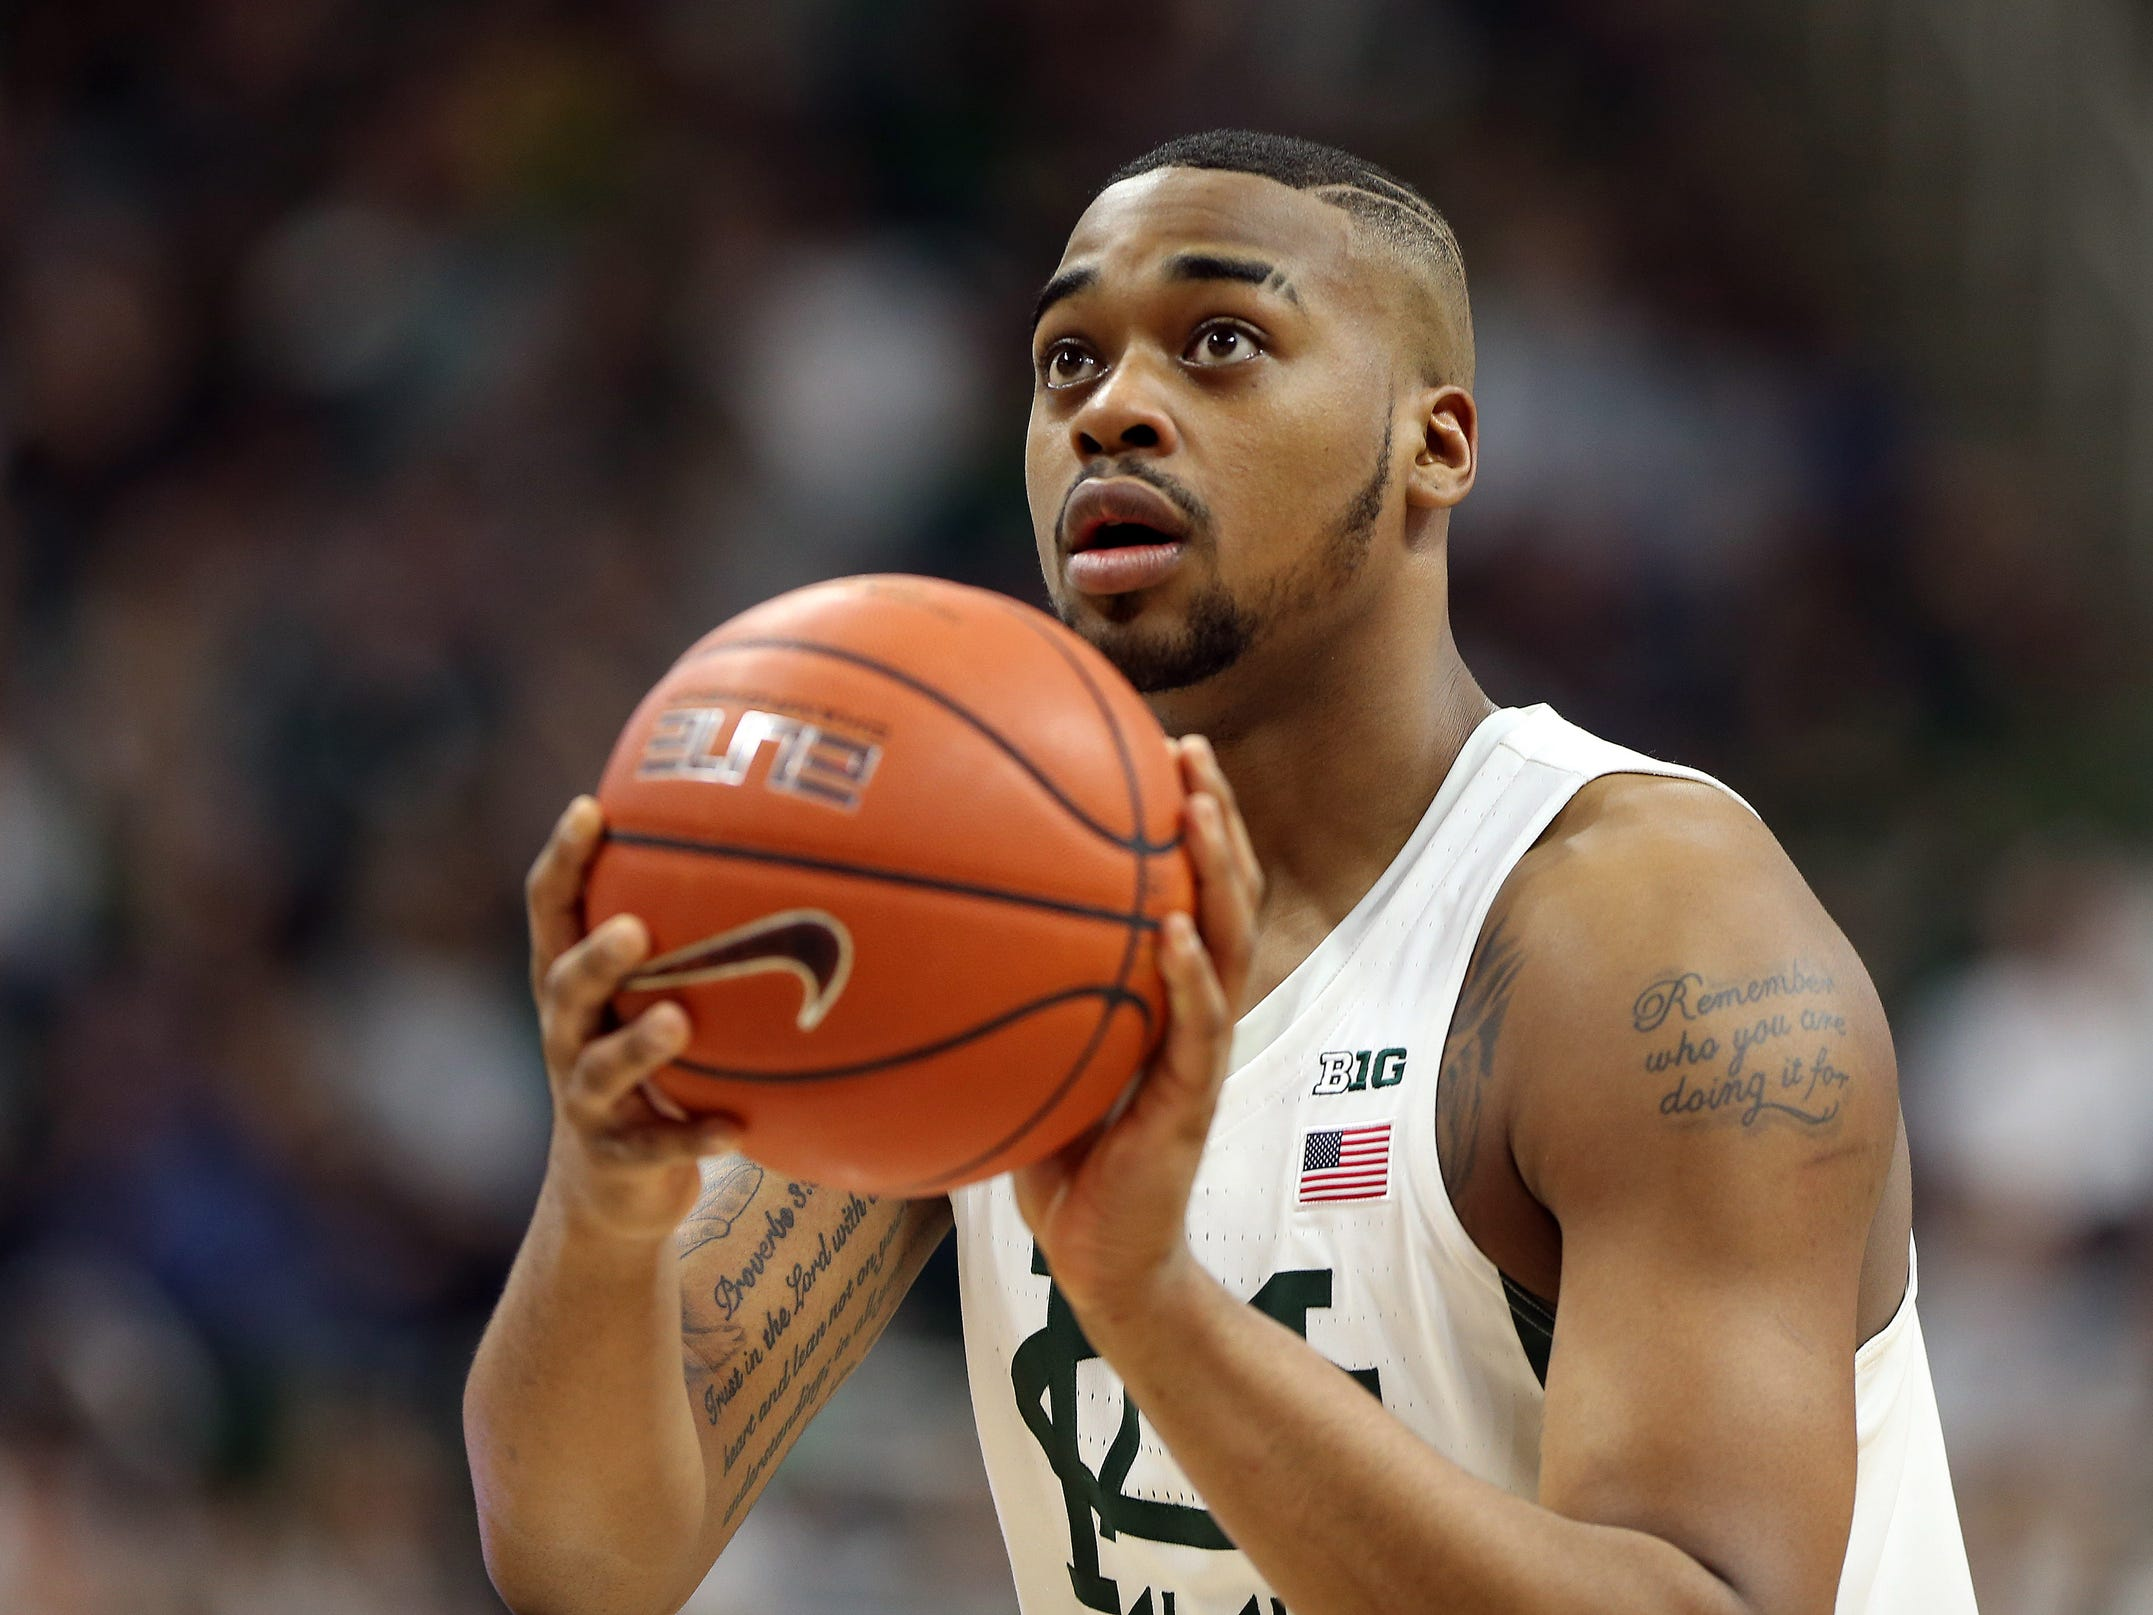 Mike CarterUSA TODAY  Michigan State forward Nick Ward prepares to shoot a free throw during the second half earlier this month against Iowa at Breslin Center in East Lansing. Feb 11, 2017; East Lansing, MI, USA; Michigan State Spartans forward Nick Ward prepares to shoot a free throw during the second half against the Iowa Hawkeyes at the Jack Breslin Student Events Center.